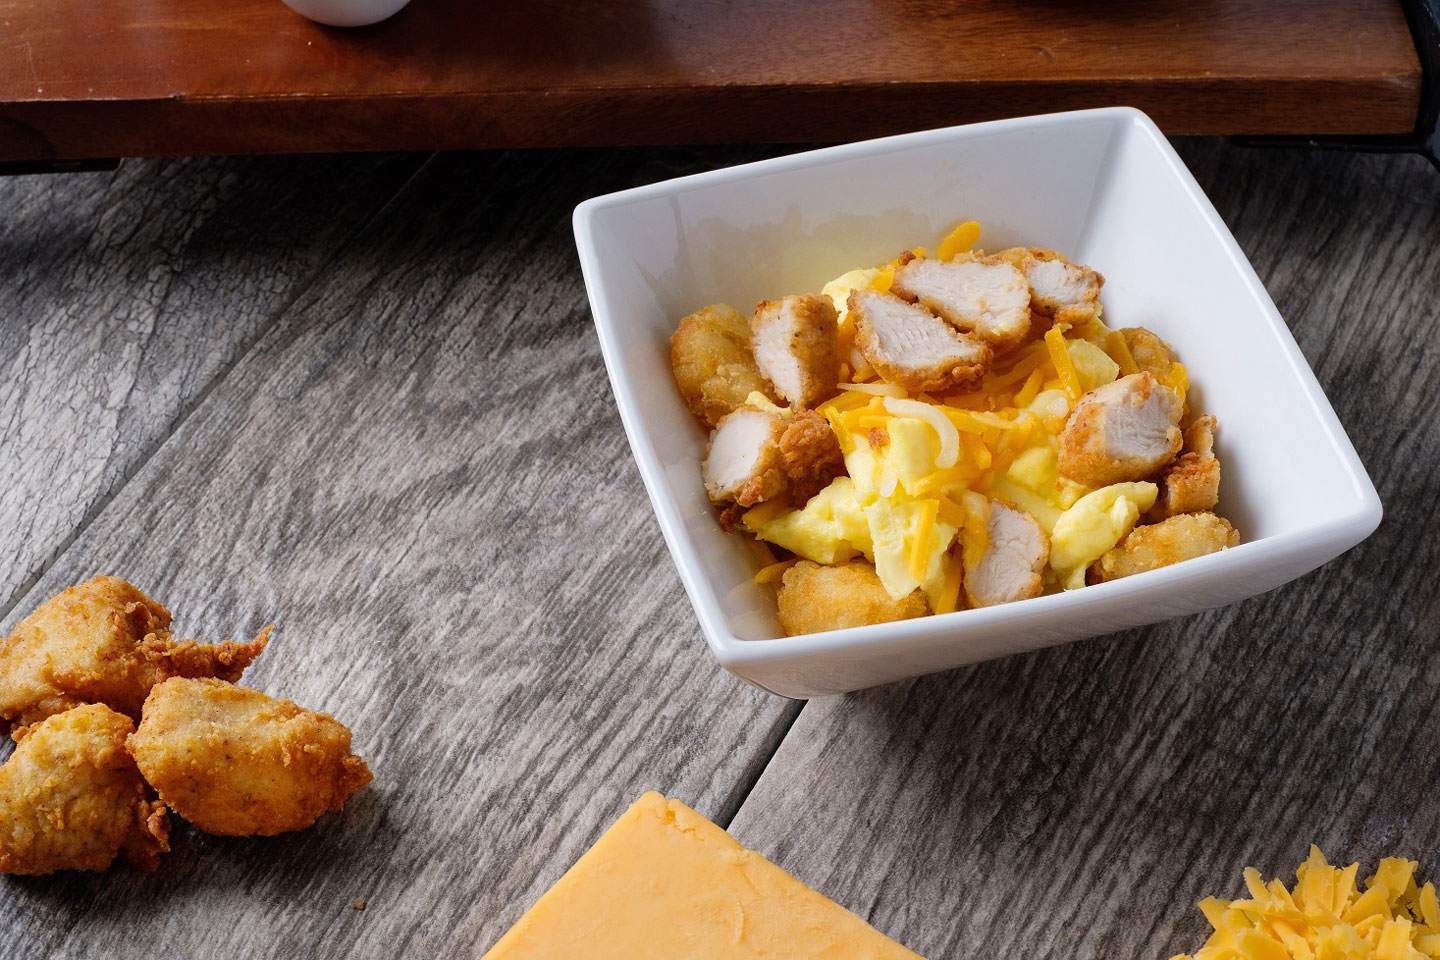 chick-fil-a rolls out breakfast bowl nationwide | chick-fil-a